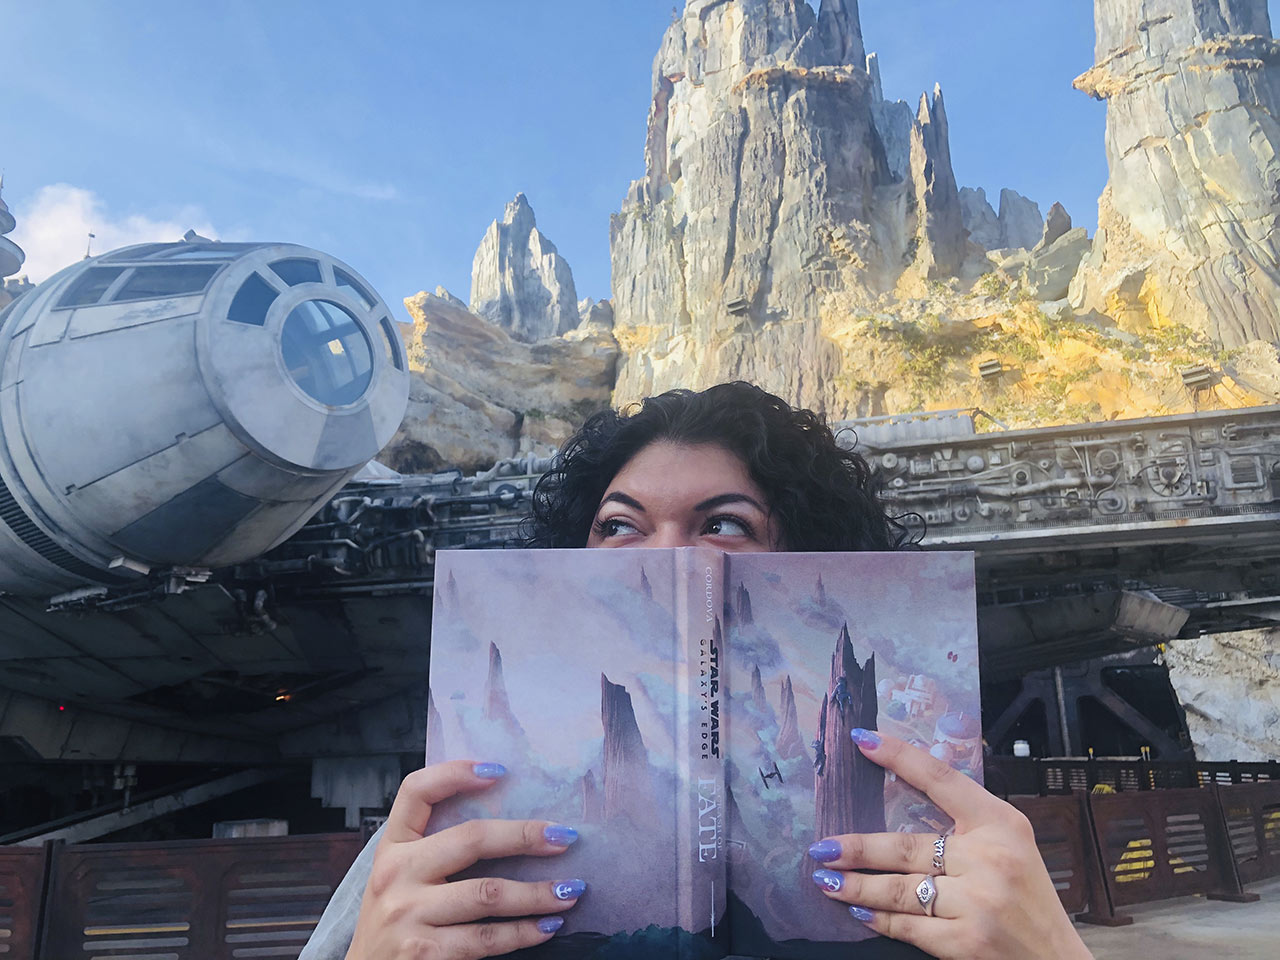 Zoraida Córdova at Star Wars: Galaxy's Edge